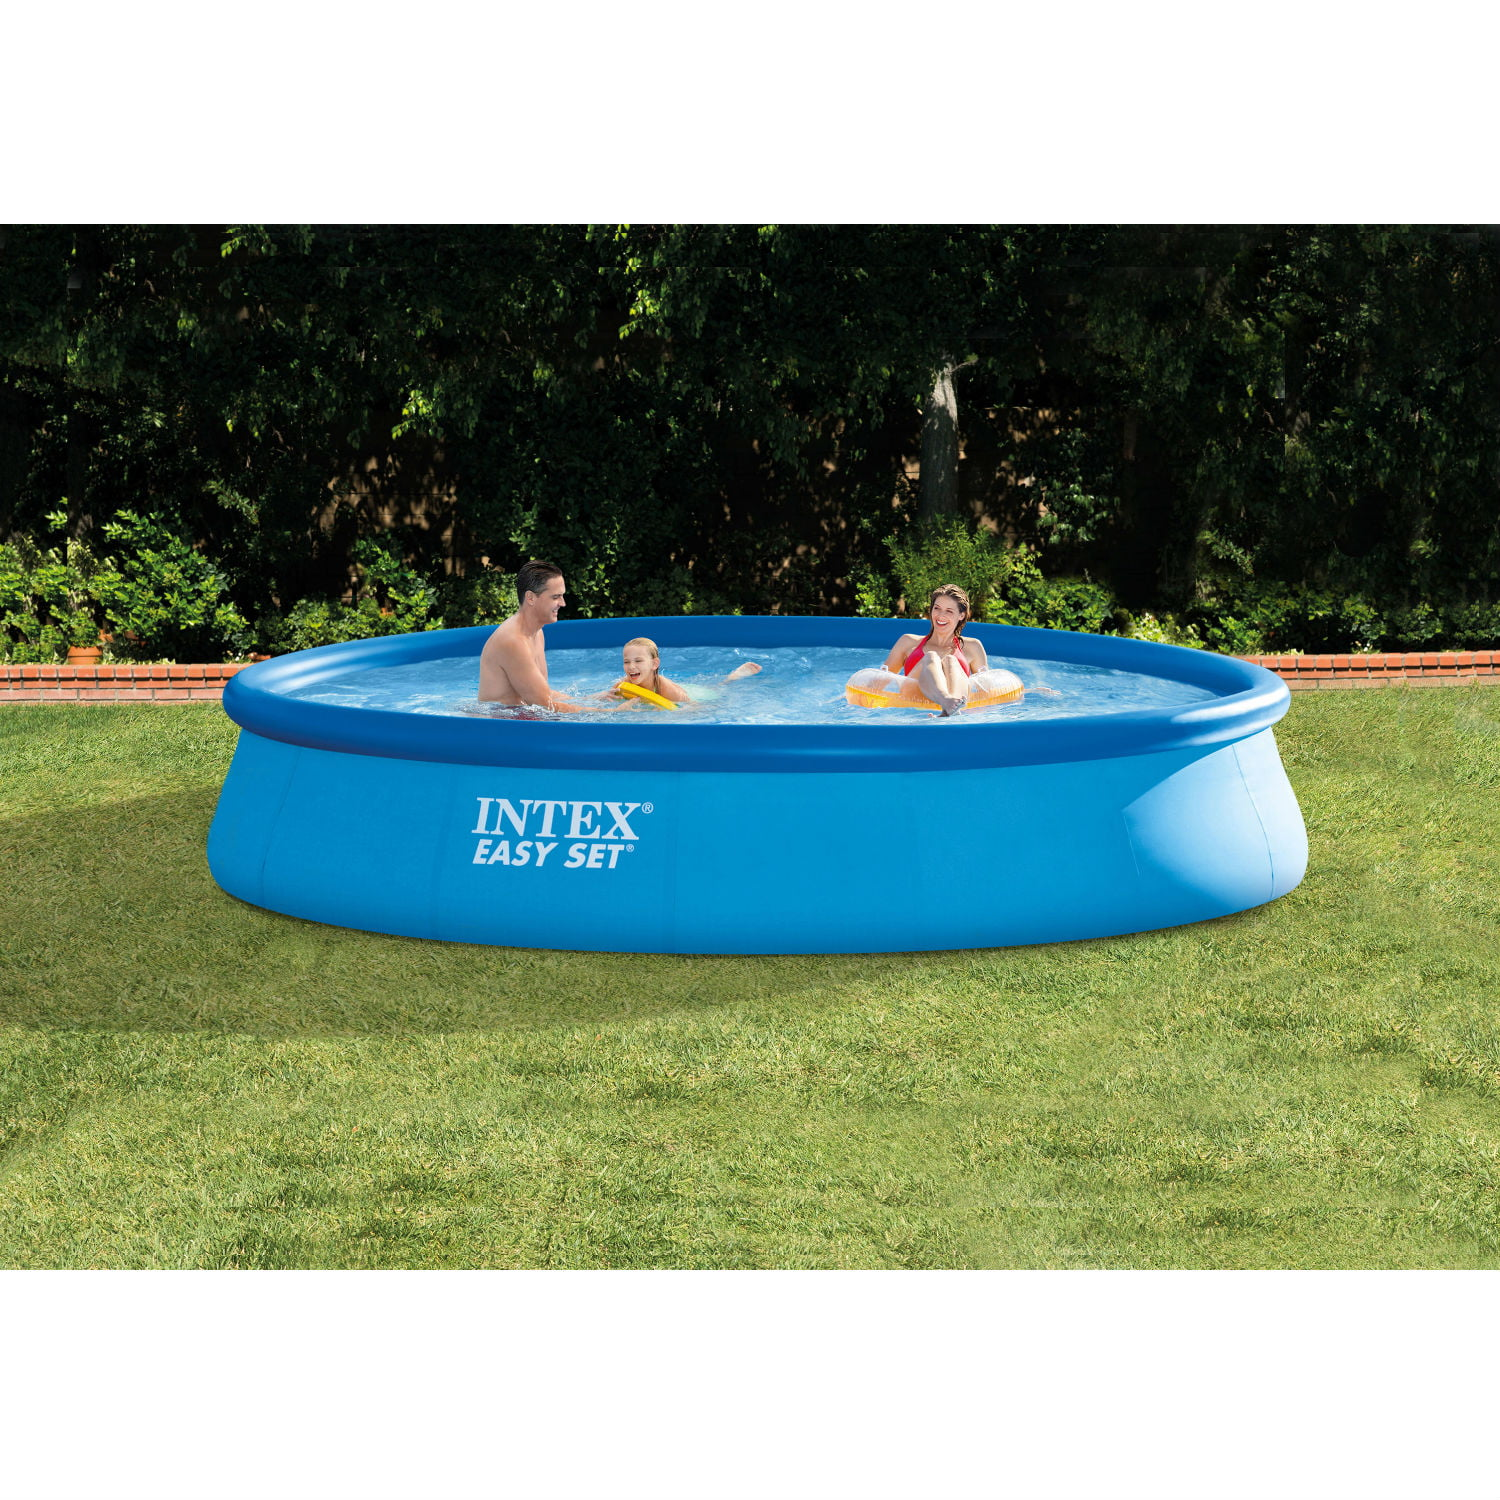 intex 13 x 33 easy set above ground swimming pool with